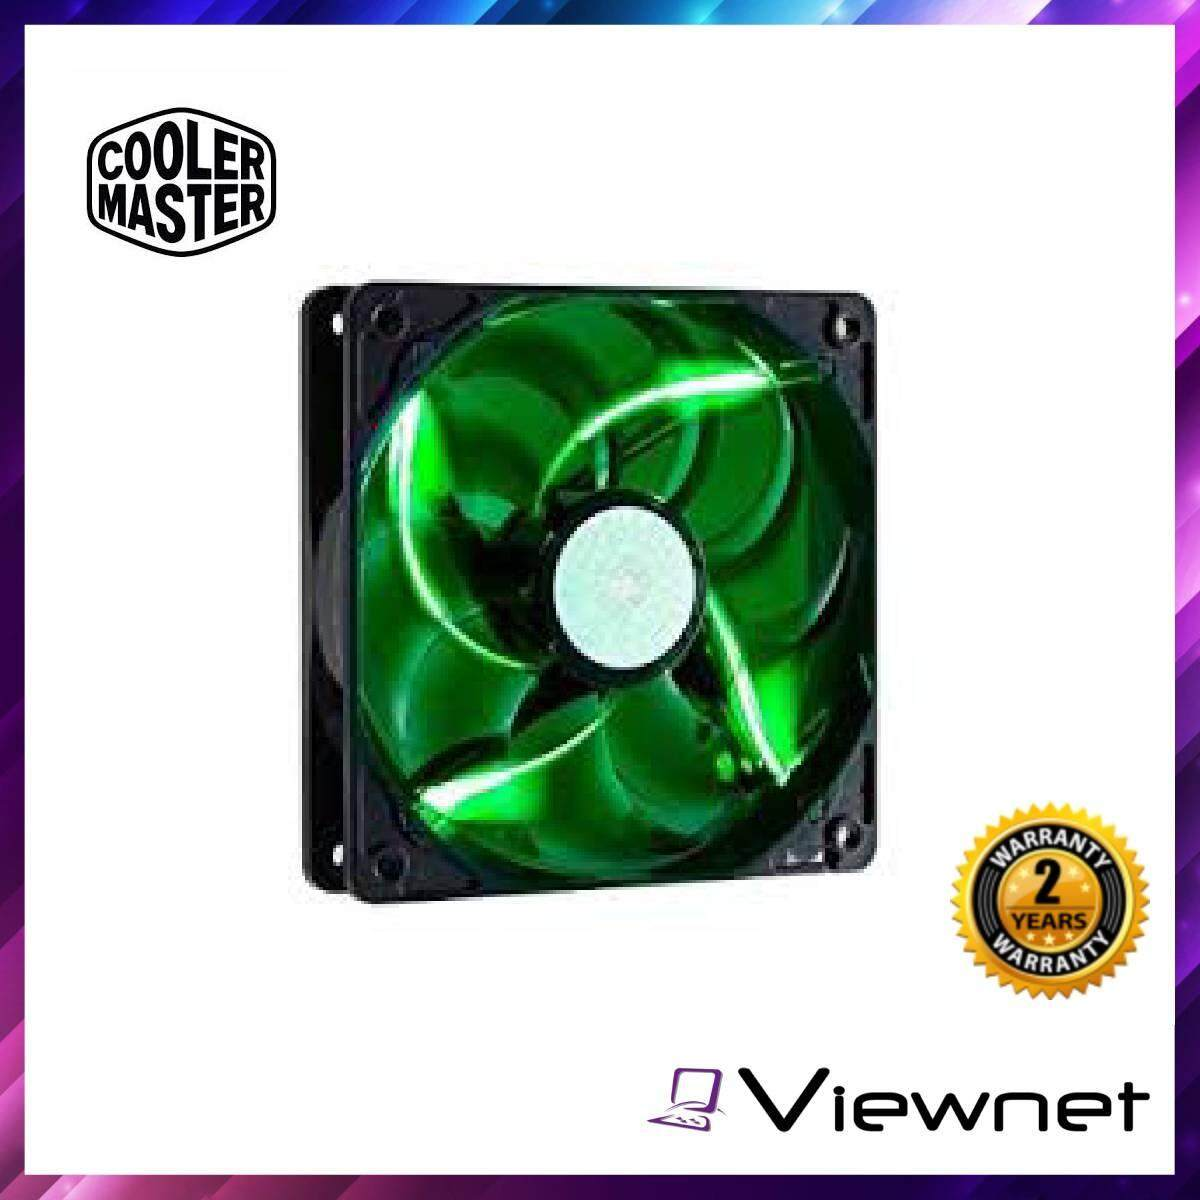 Cooler Master 12cm Sickle Flow X (Blue,Green,Red) (R4-SXDP-20FB-A1), 4th generation bearing, smart fan engine, smooth LED lights